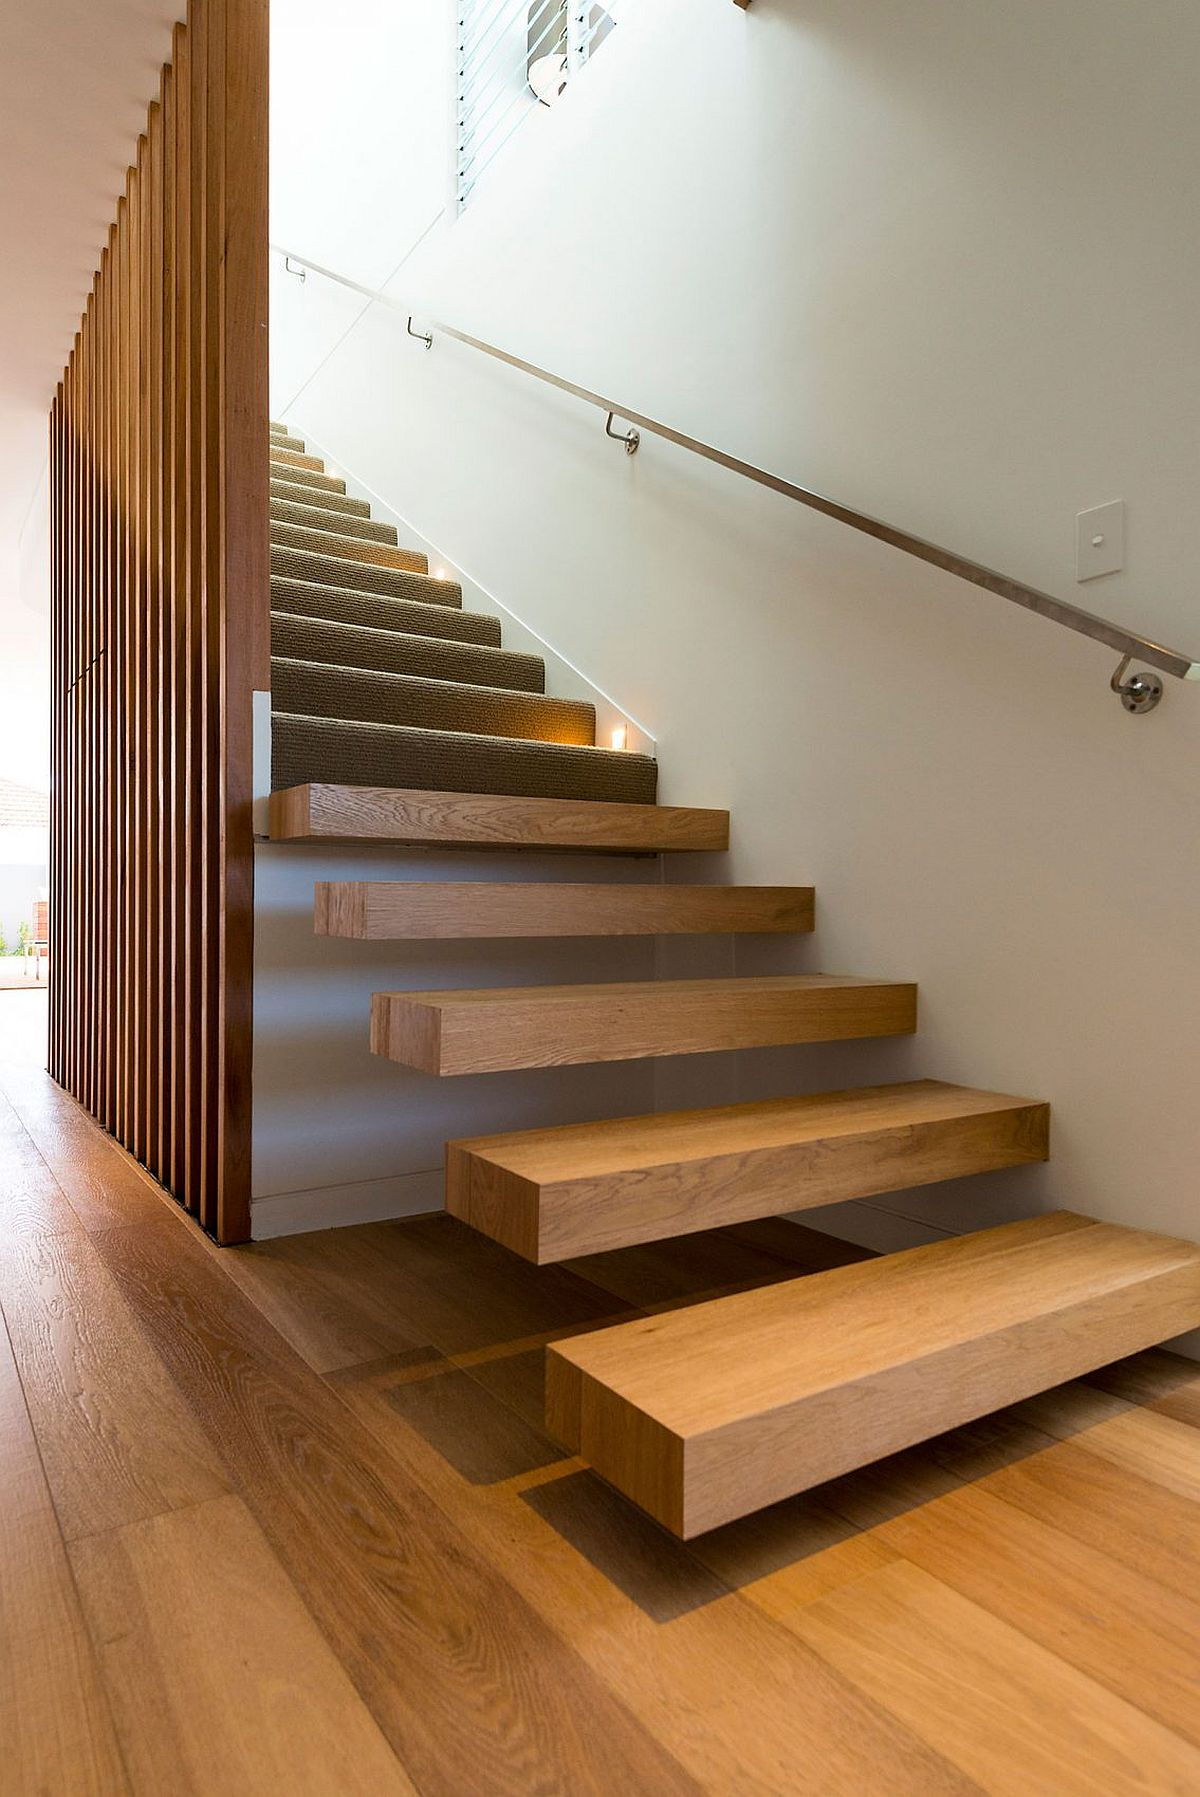 Floating wooden staircase with wooden slats inisde the contemporary home